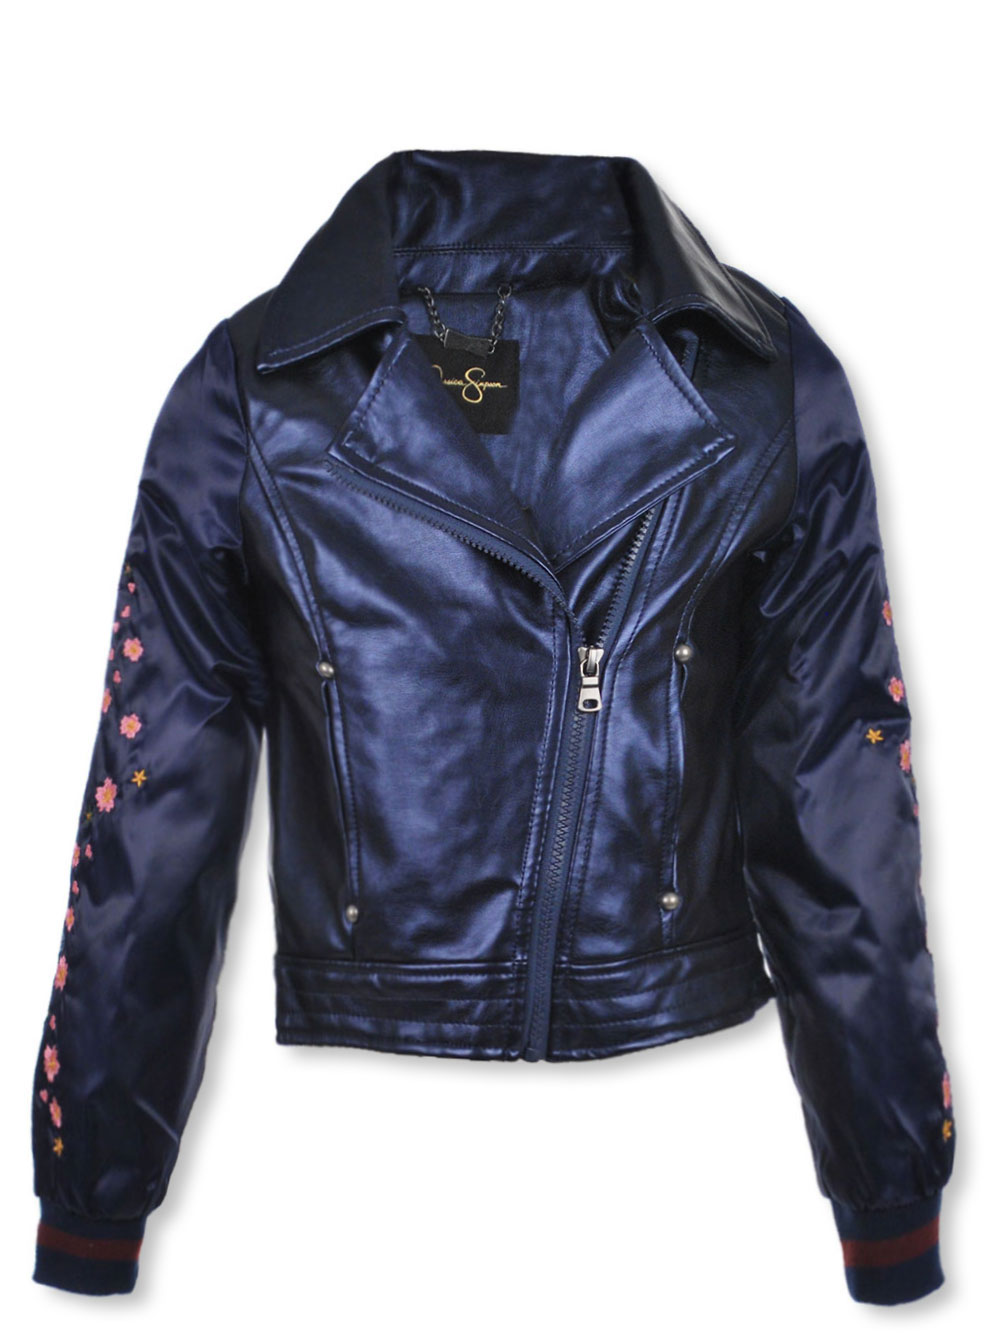 896e0a2a3 Girls' Moto Jacket by Jessica Simpson in indigo and rose from Cookie's Kids